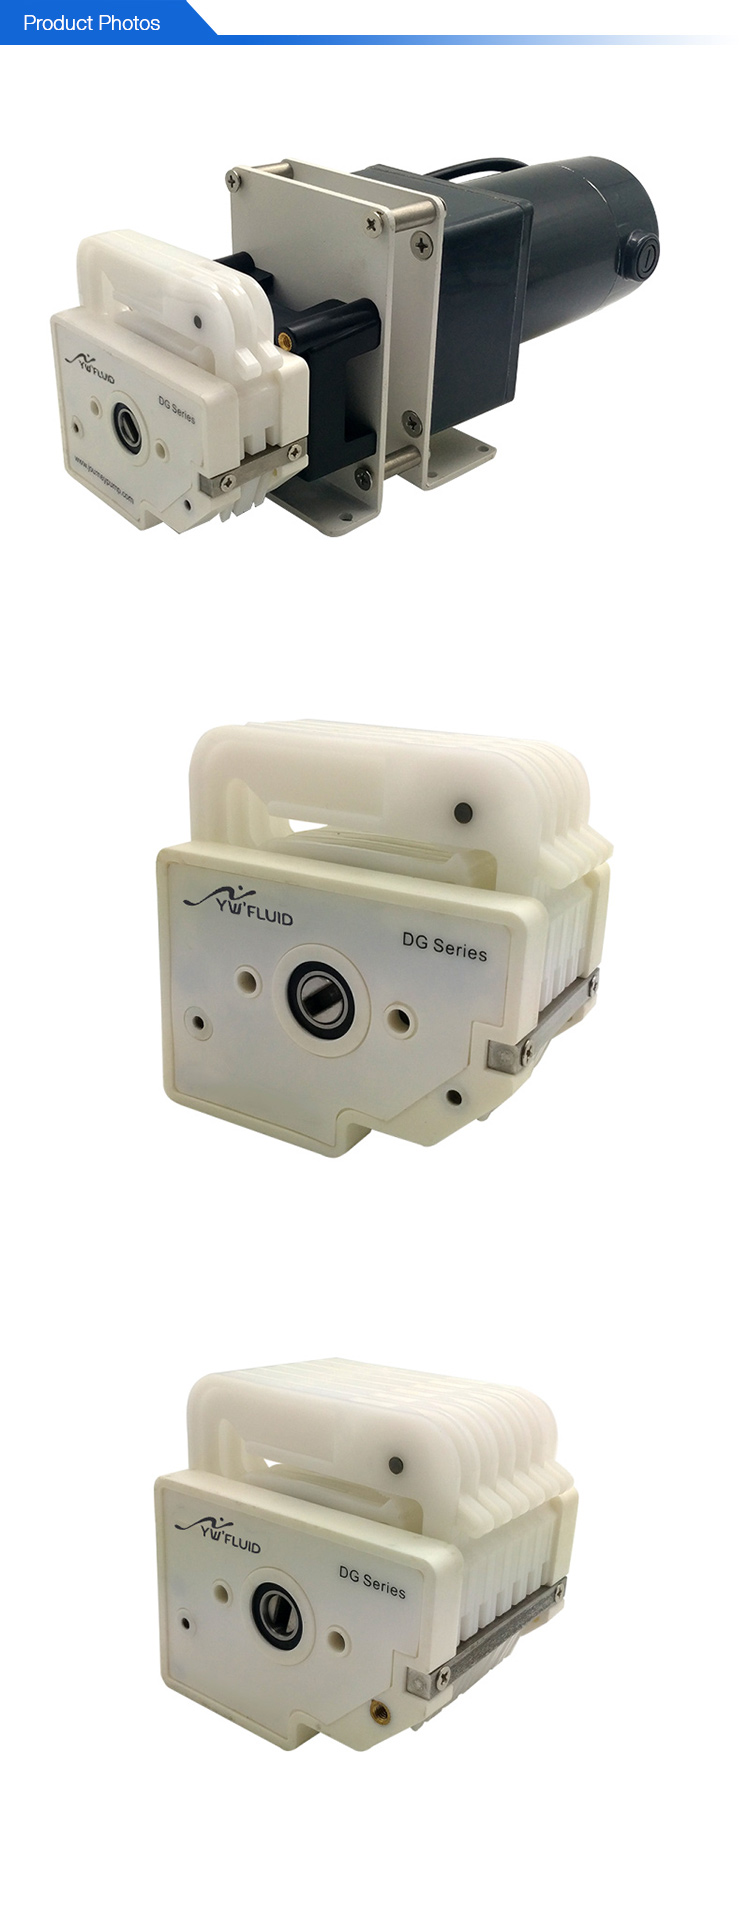 YWfluid Multi Channel DC Motor Peristaltic Dosing Pump Used for Pharmaceutical filling cosmetic filling